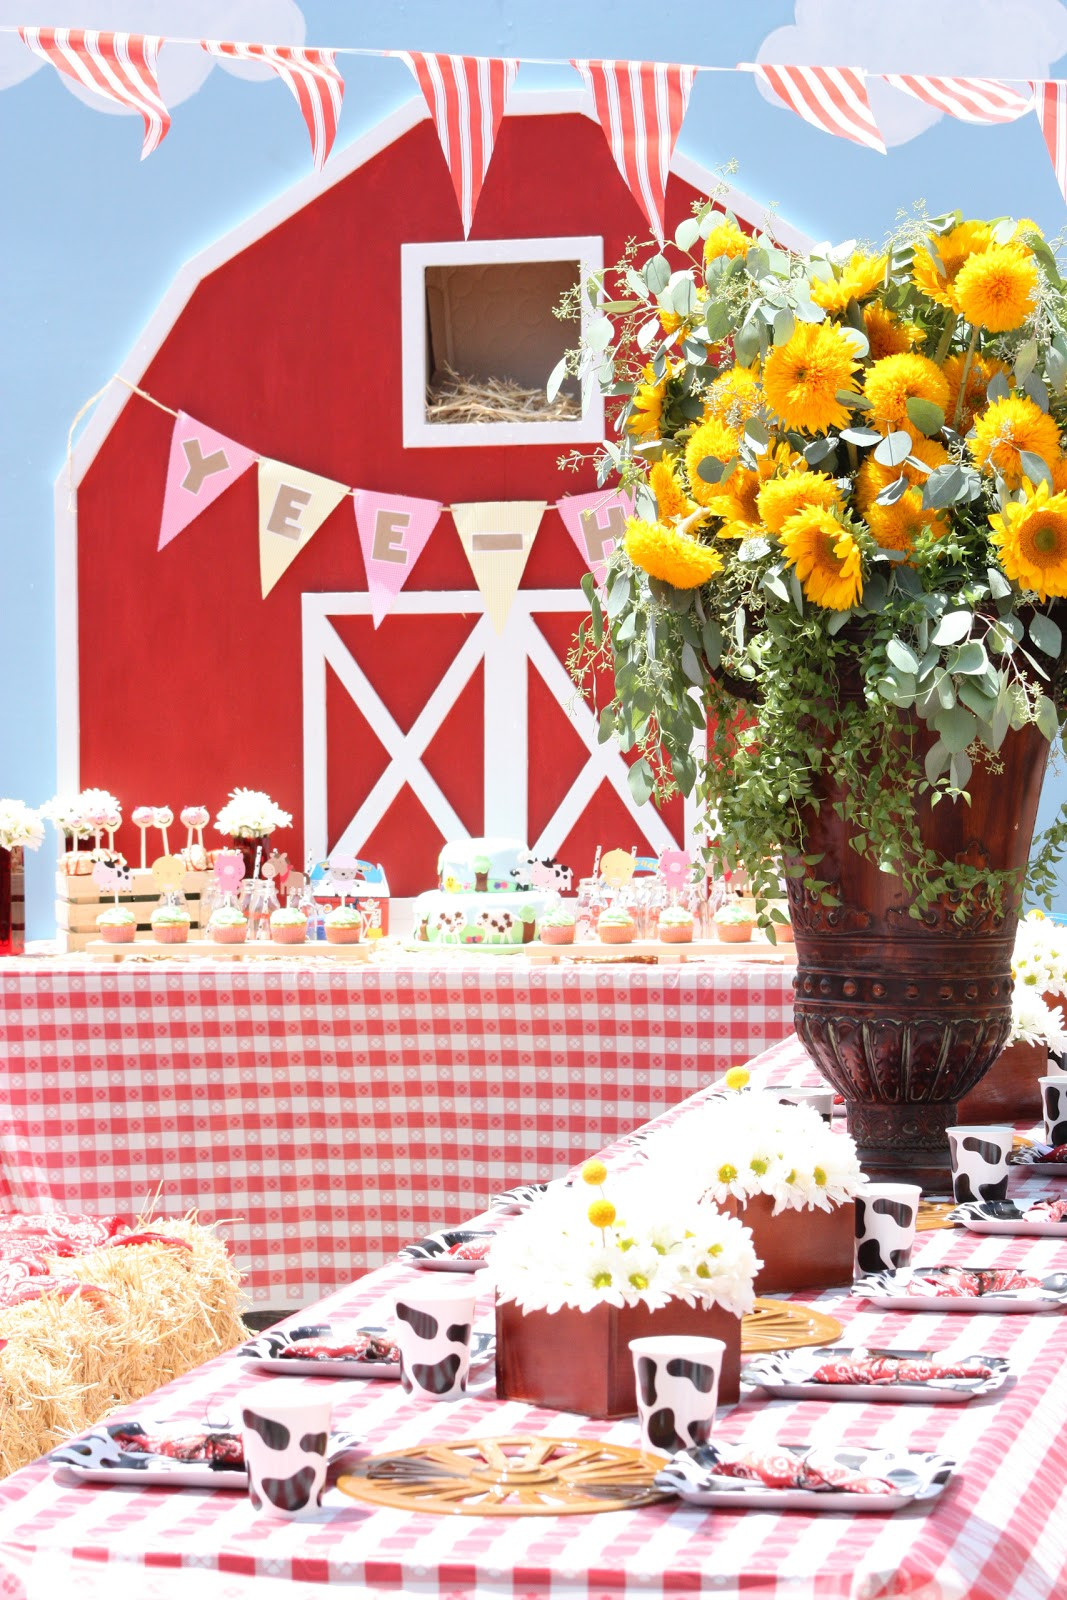 Best ideas about Barn Birthday Party . Save or Pin Events Inspired by Love Barnyard Birthday Bash Now.